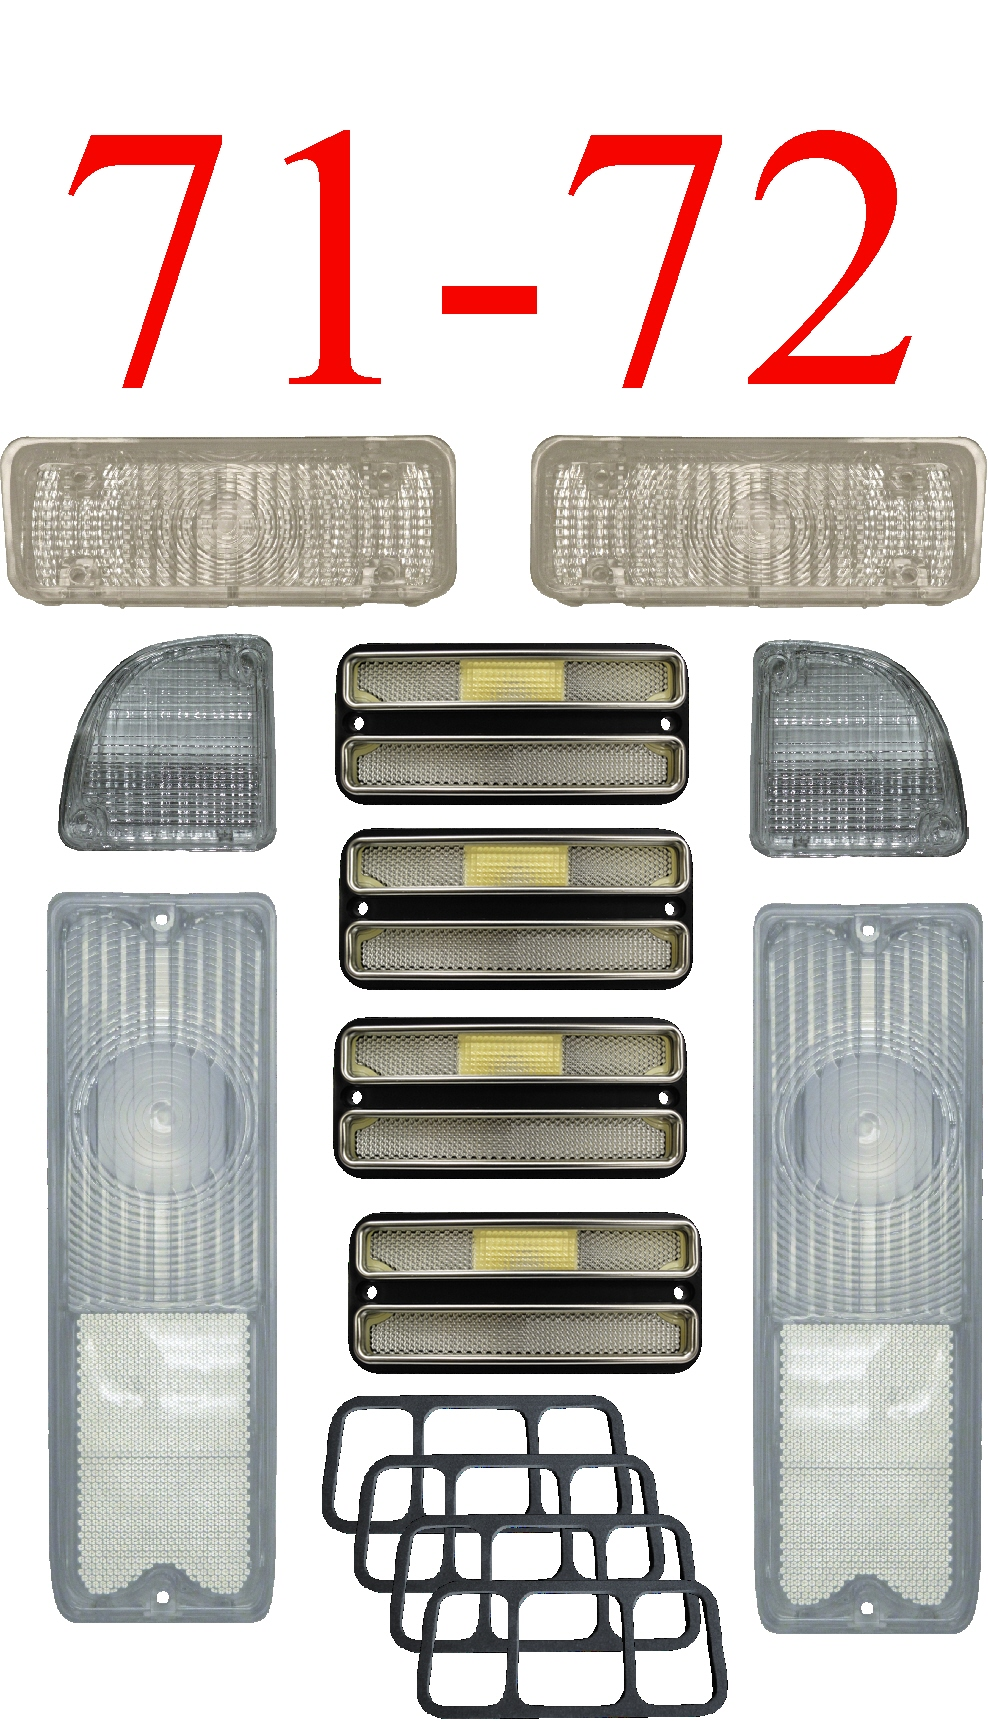 71-72 Chevy 10Pc All Clear Tail Light, Deluxe Side & Parking